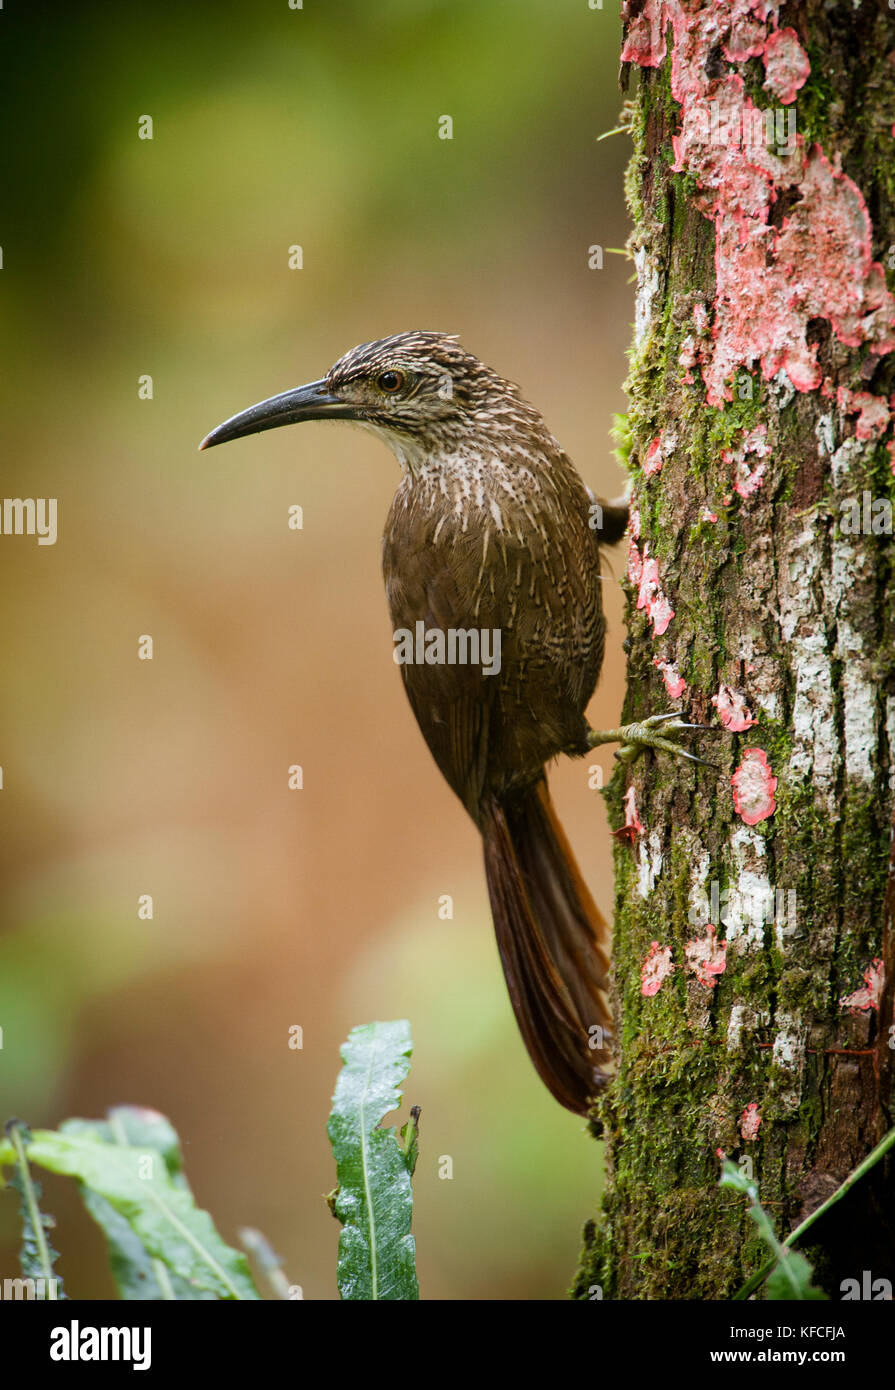 A White-throated Woodcreeper (Xiphocolaptes albicollis) from the Atlantic Rainforest of SE Brazil - Stock Image